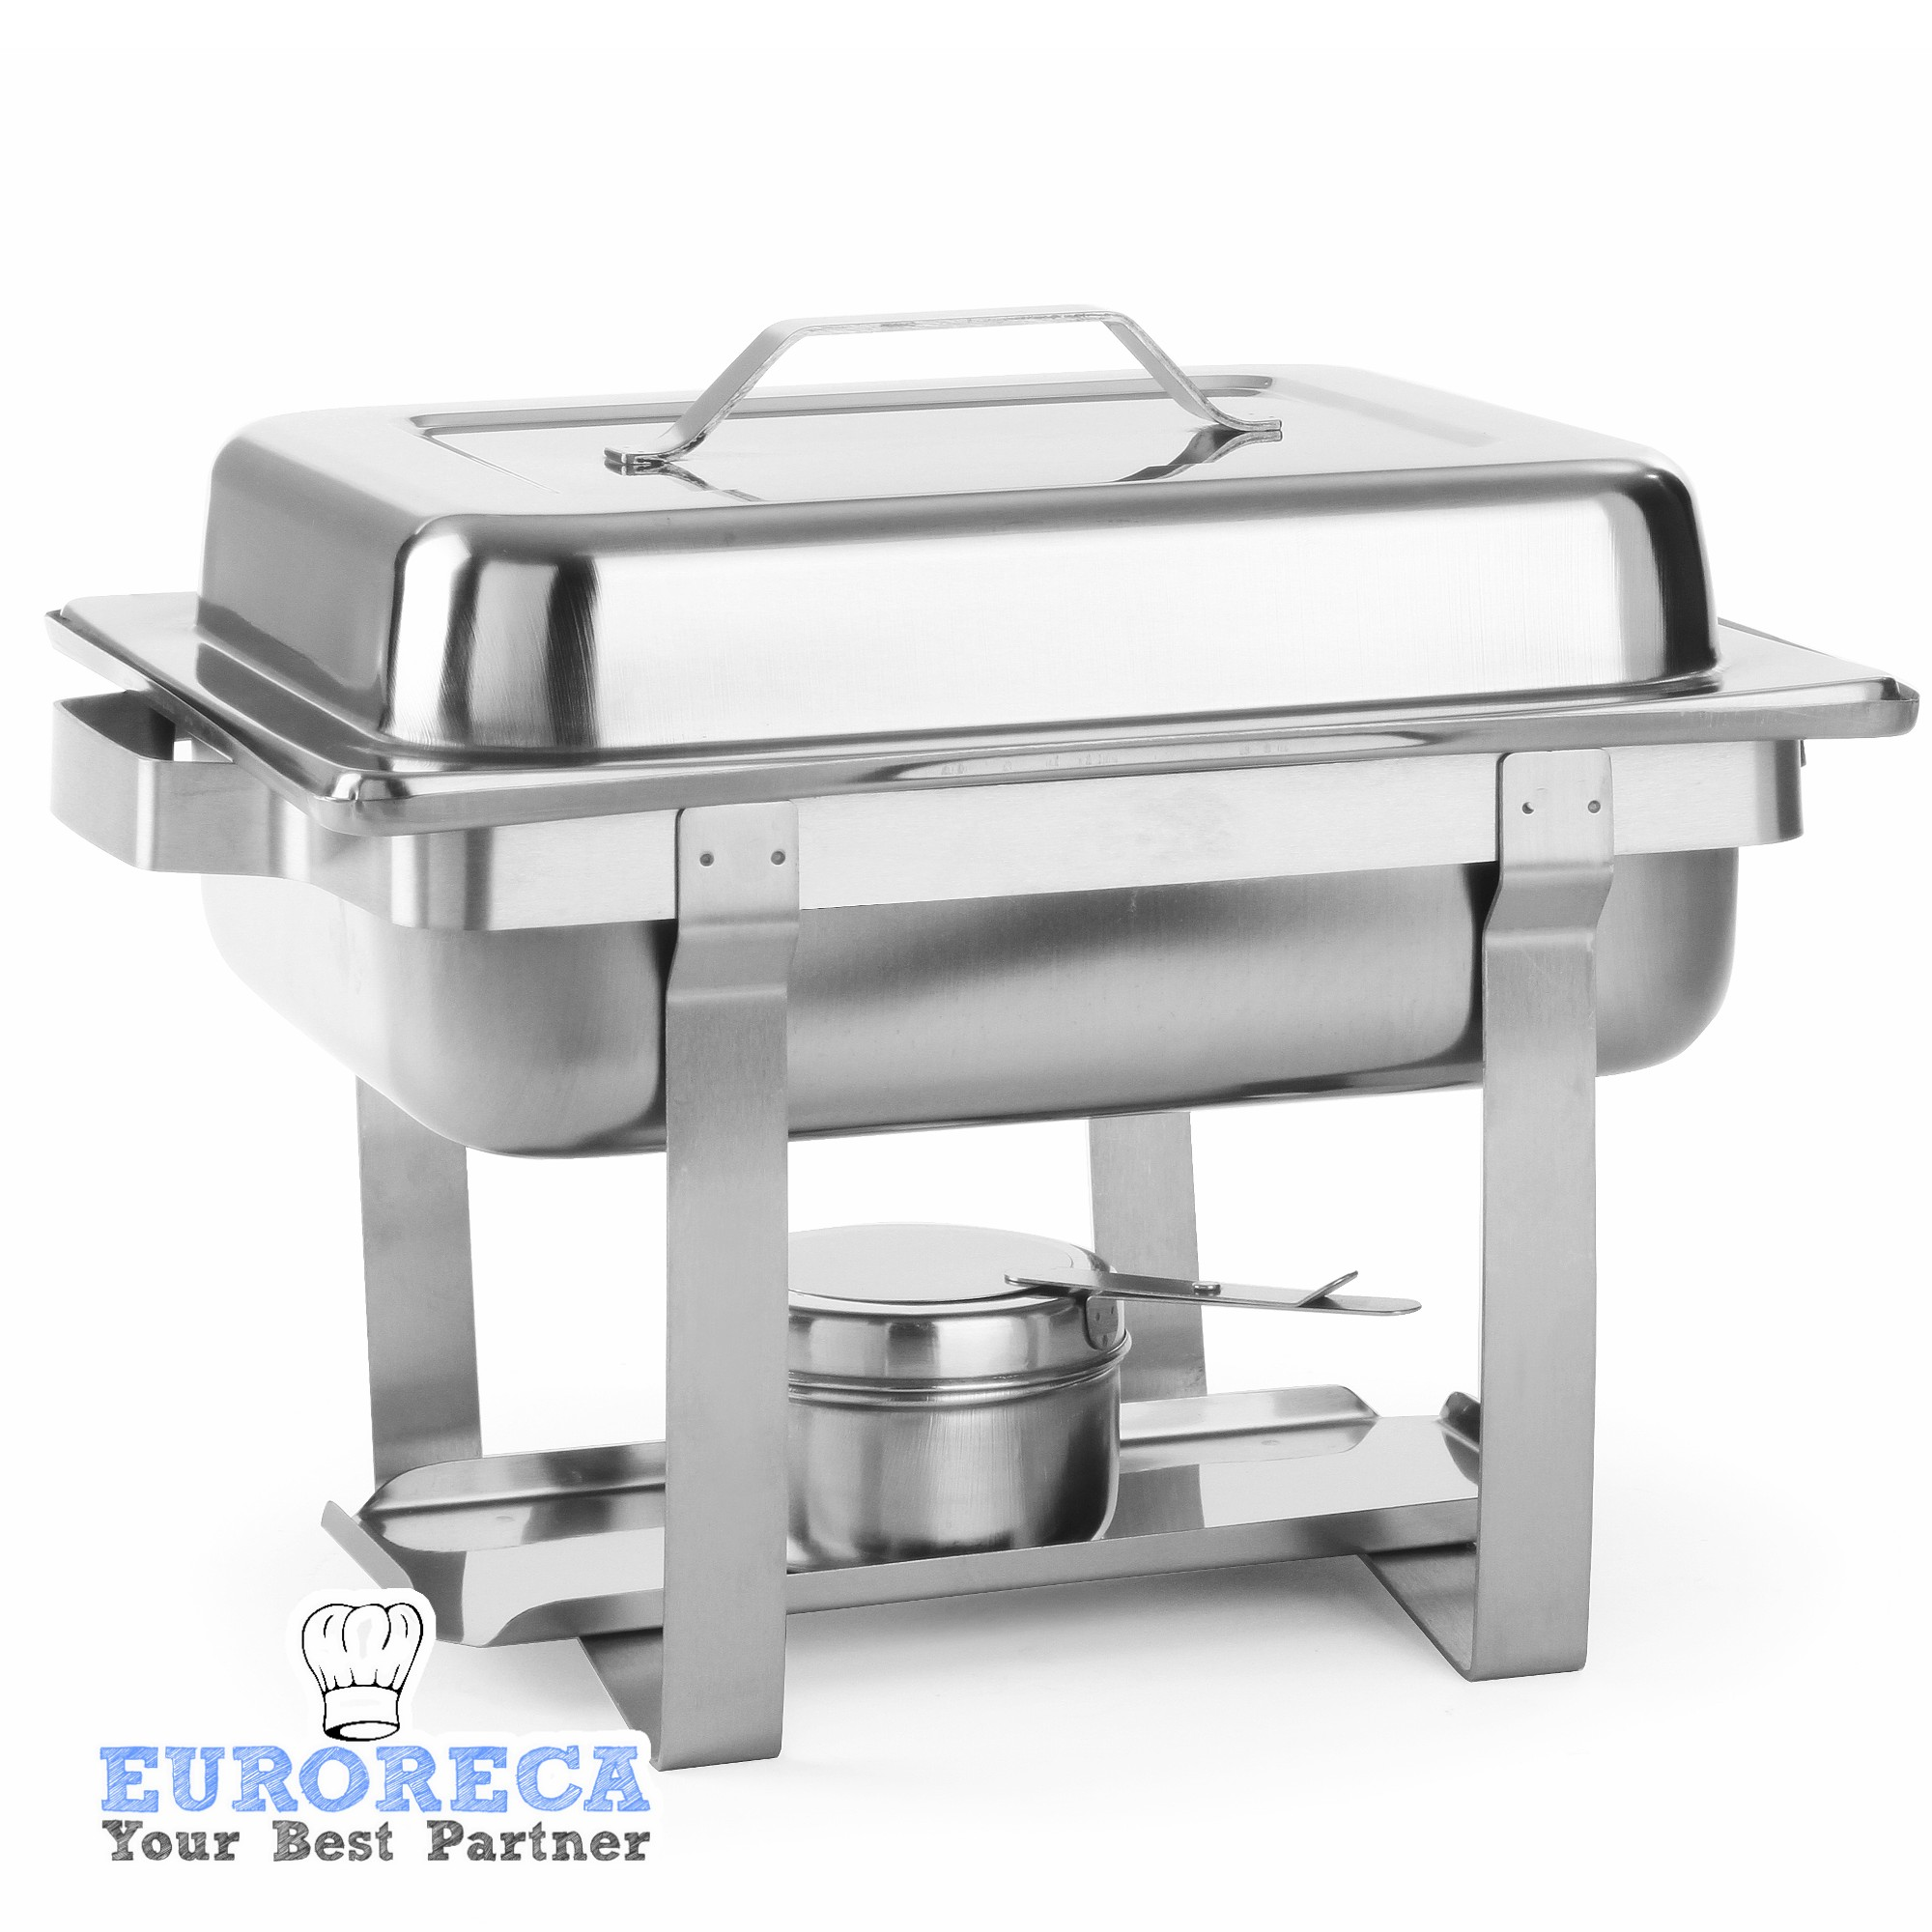 Chafing dish Gastronorme 1/2